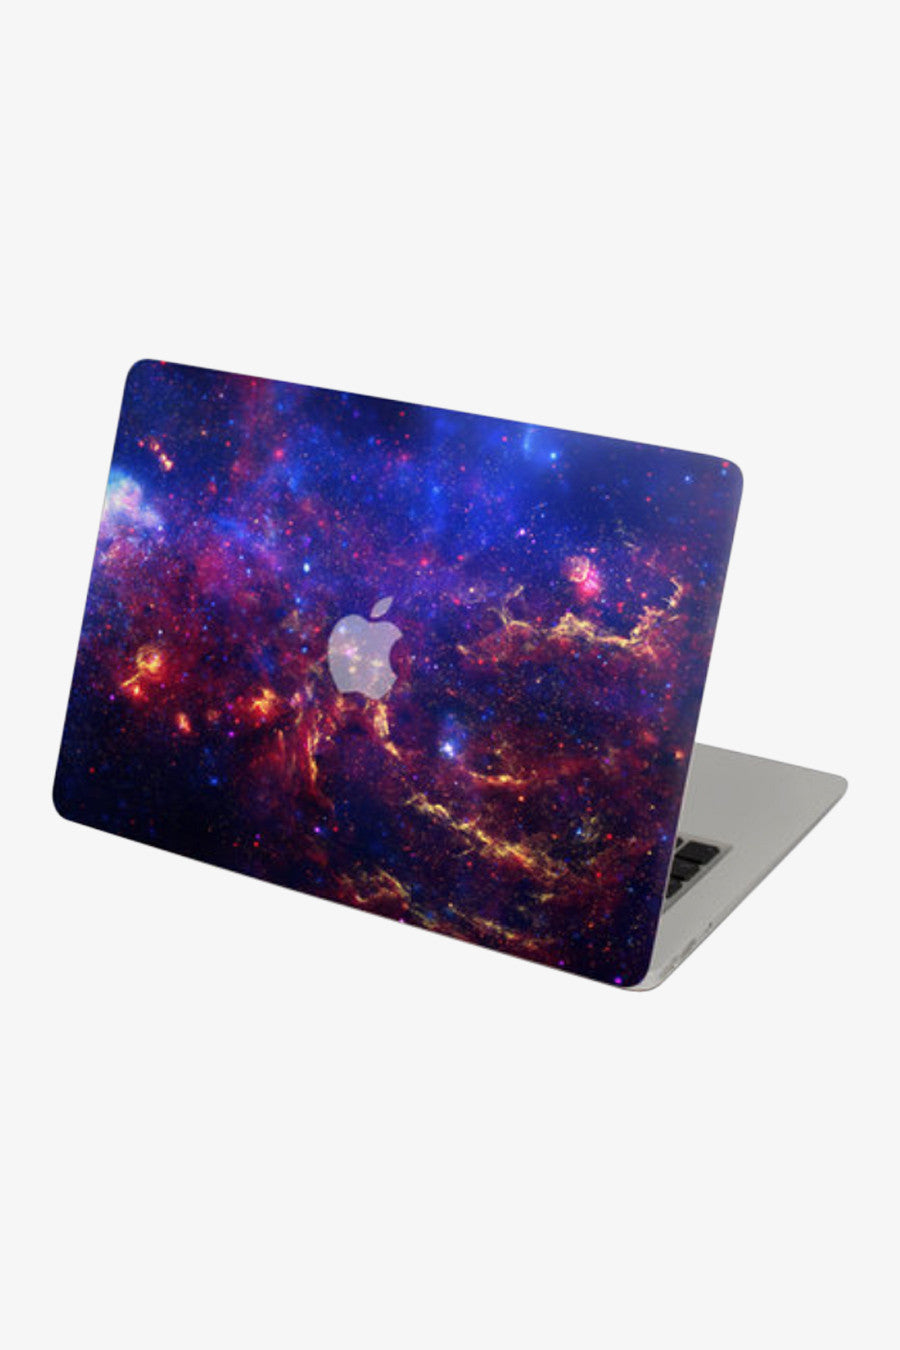 Macbook Universe Skin Decal Sticker. Art Decals By Moooh!!